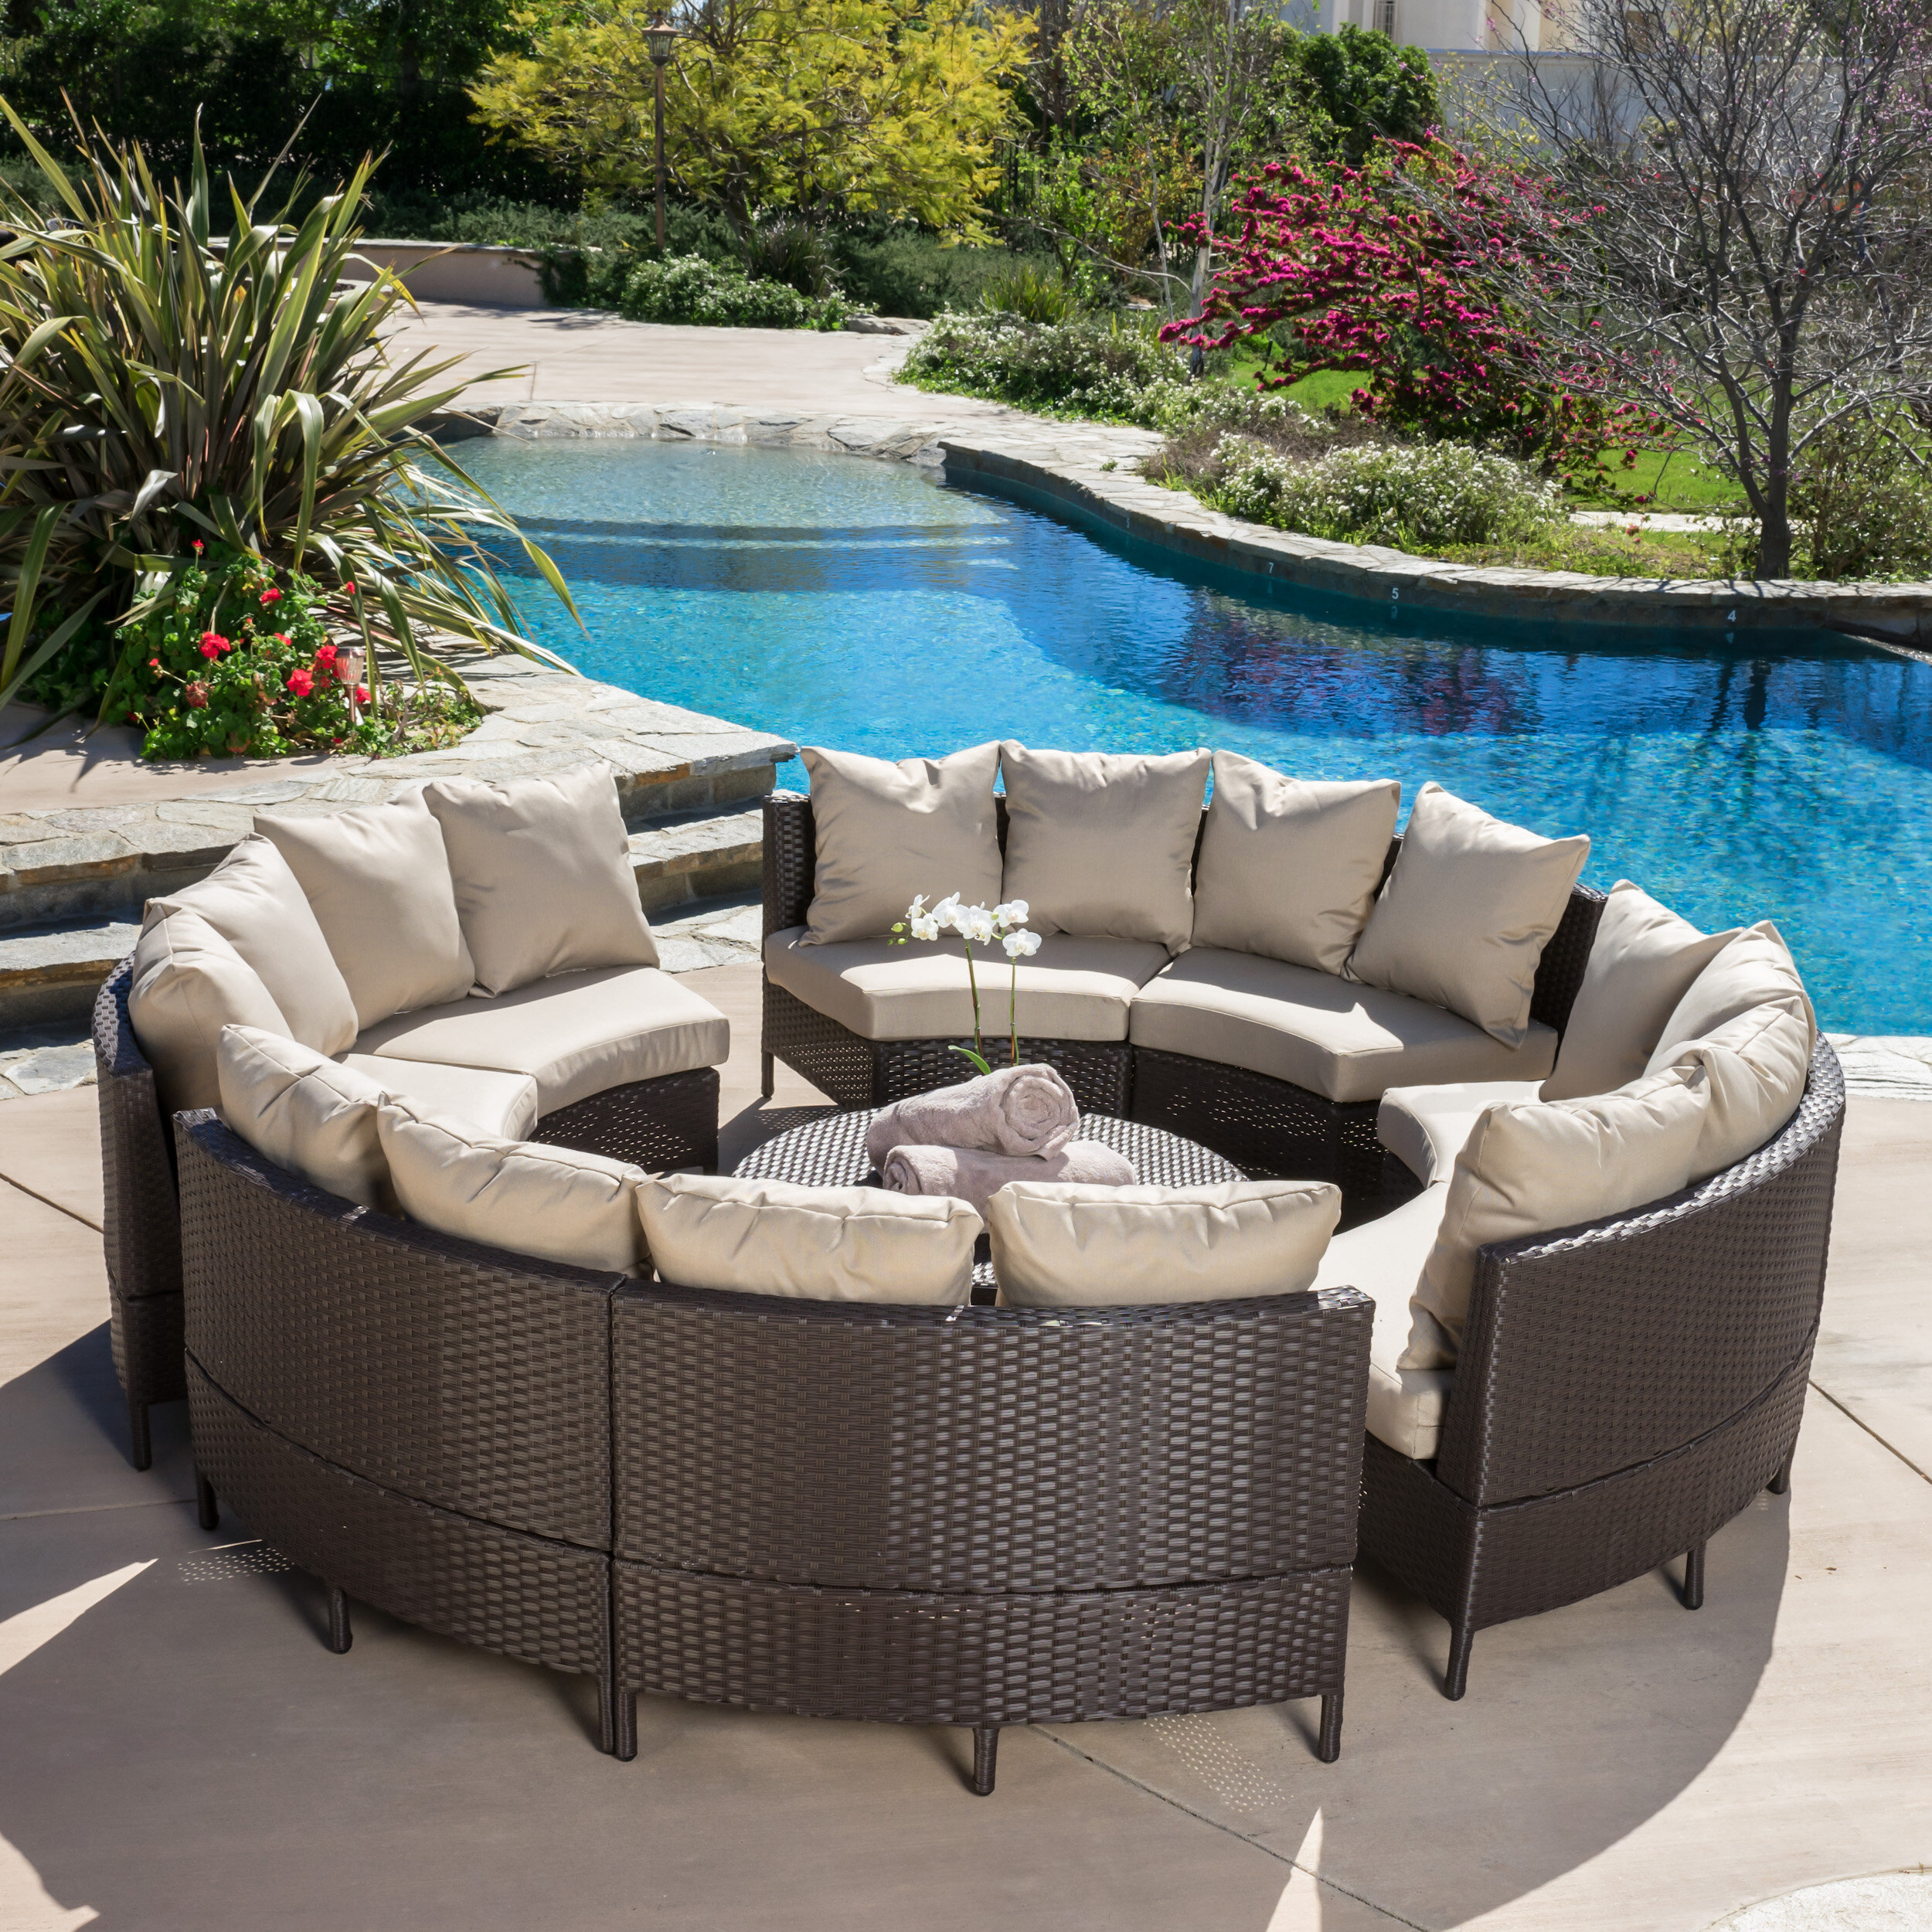 Beachcrest Home Sena 10 Piece Rattan Sectional Seating Group With Cushions Reviews Wayfair